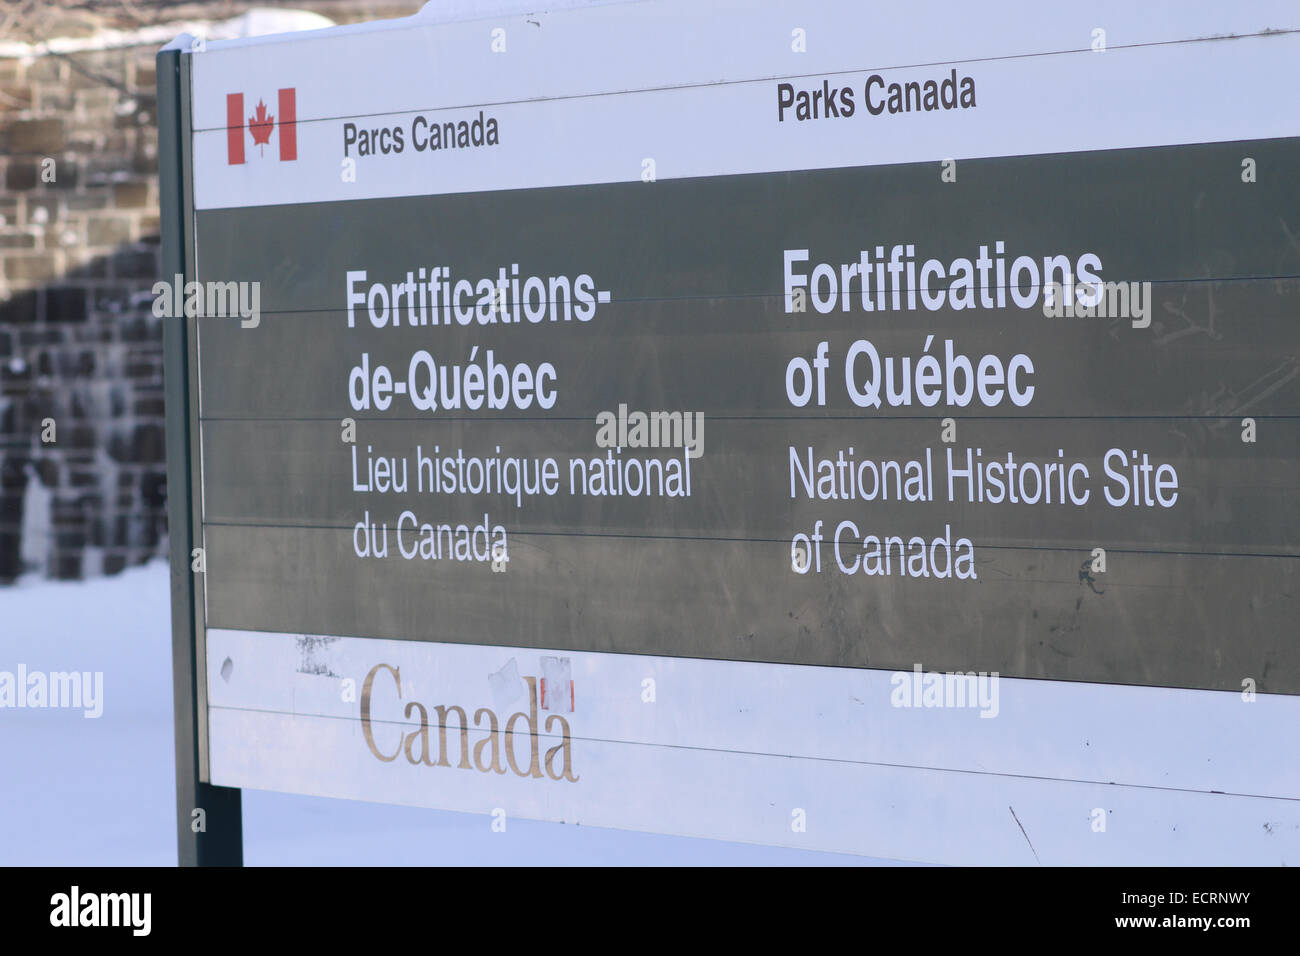 The Fortifications of Quebec sign. - Stock Image